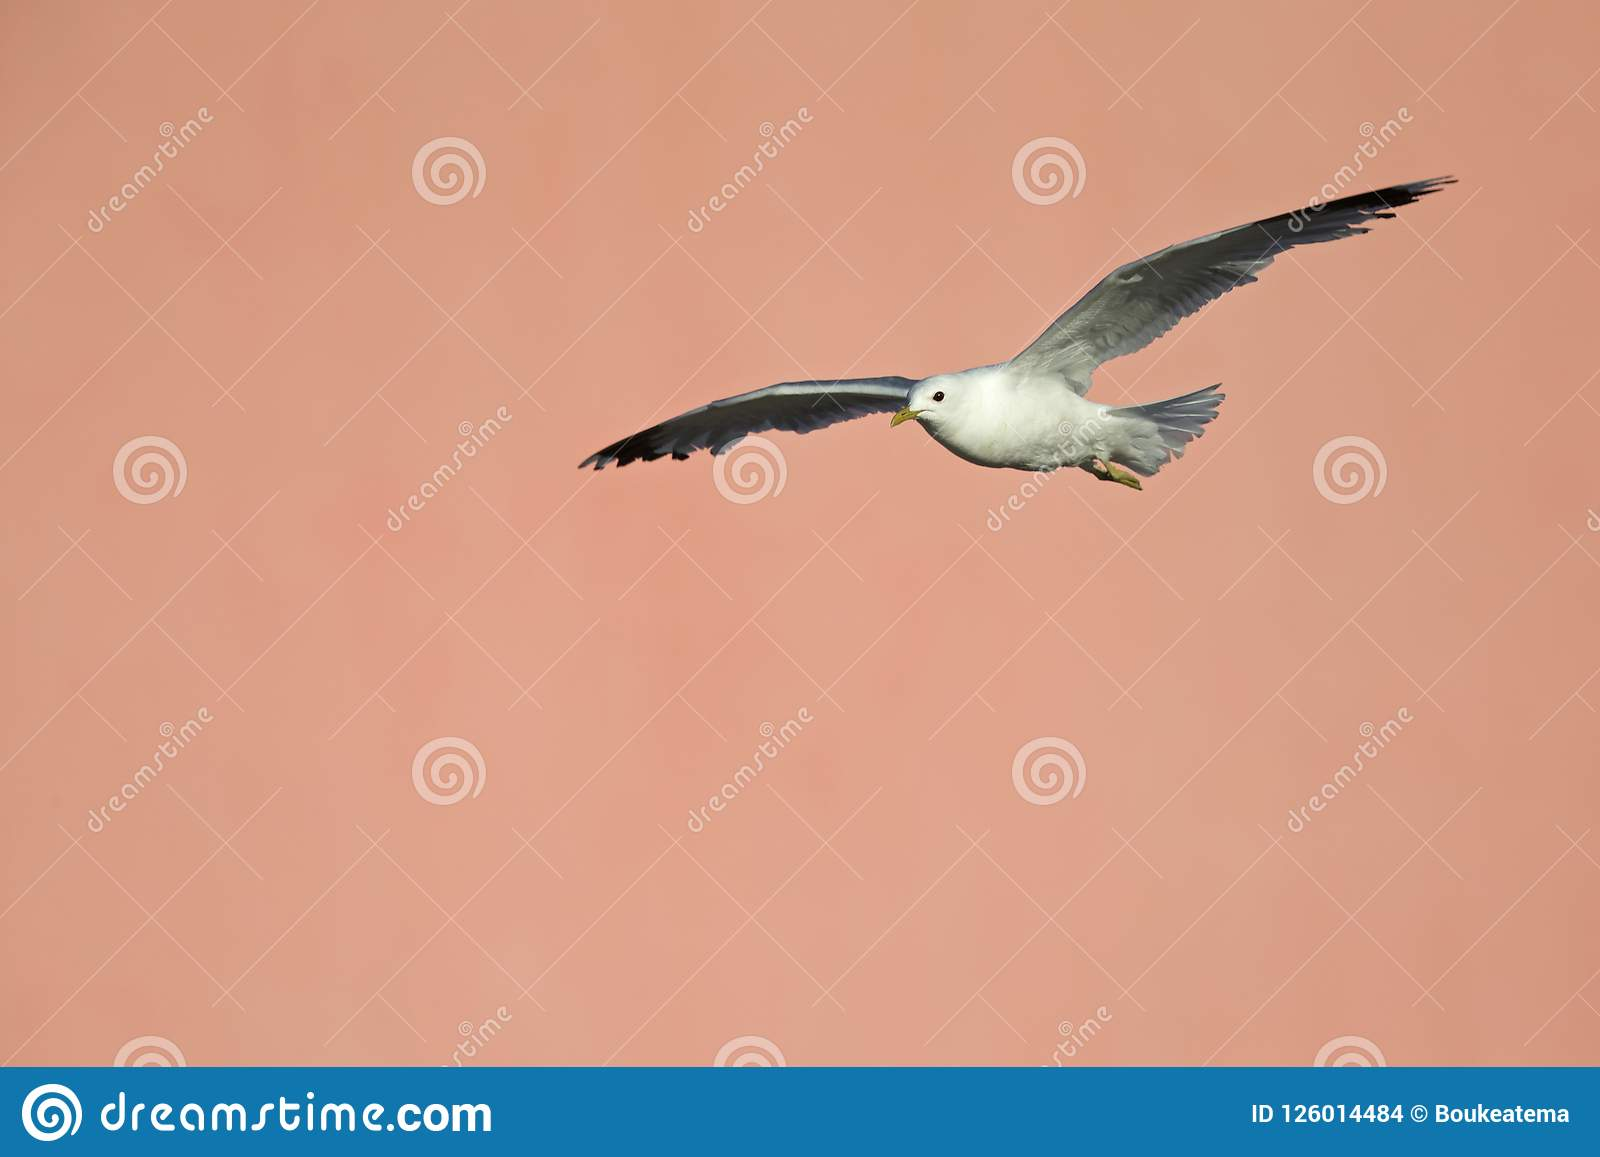 A common gull or mew gull Larus canus flying infront of a concrete pink wall in the ports of Bremen Germany.